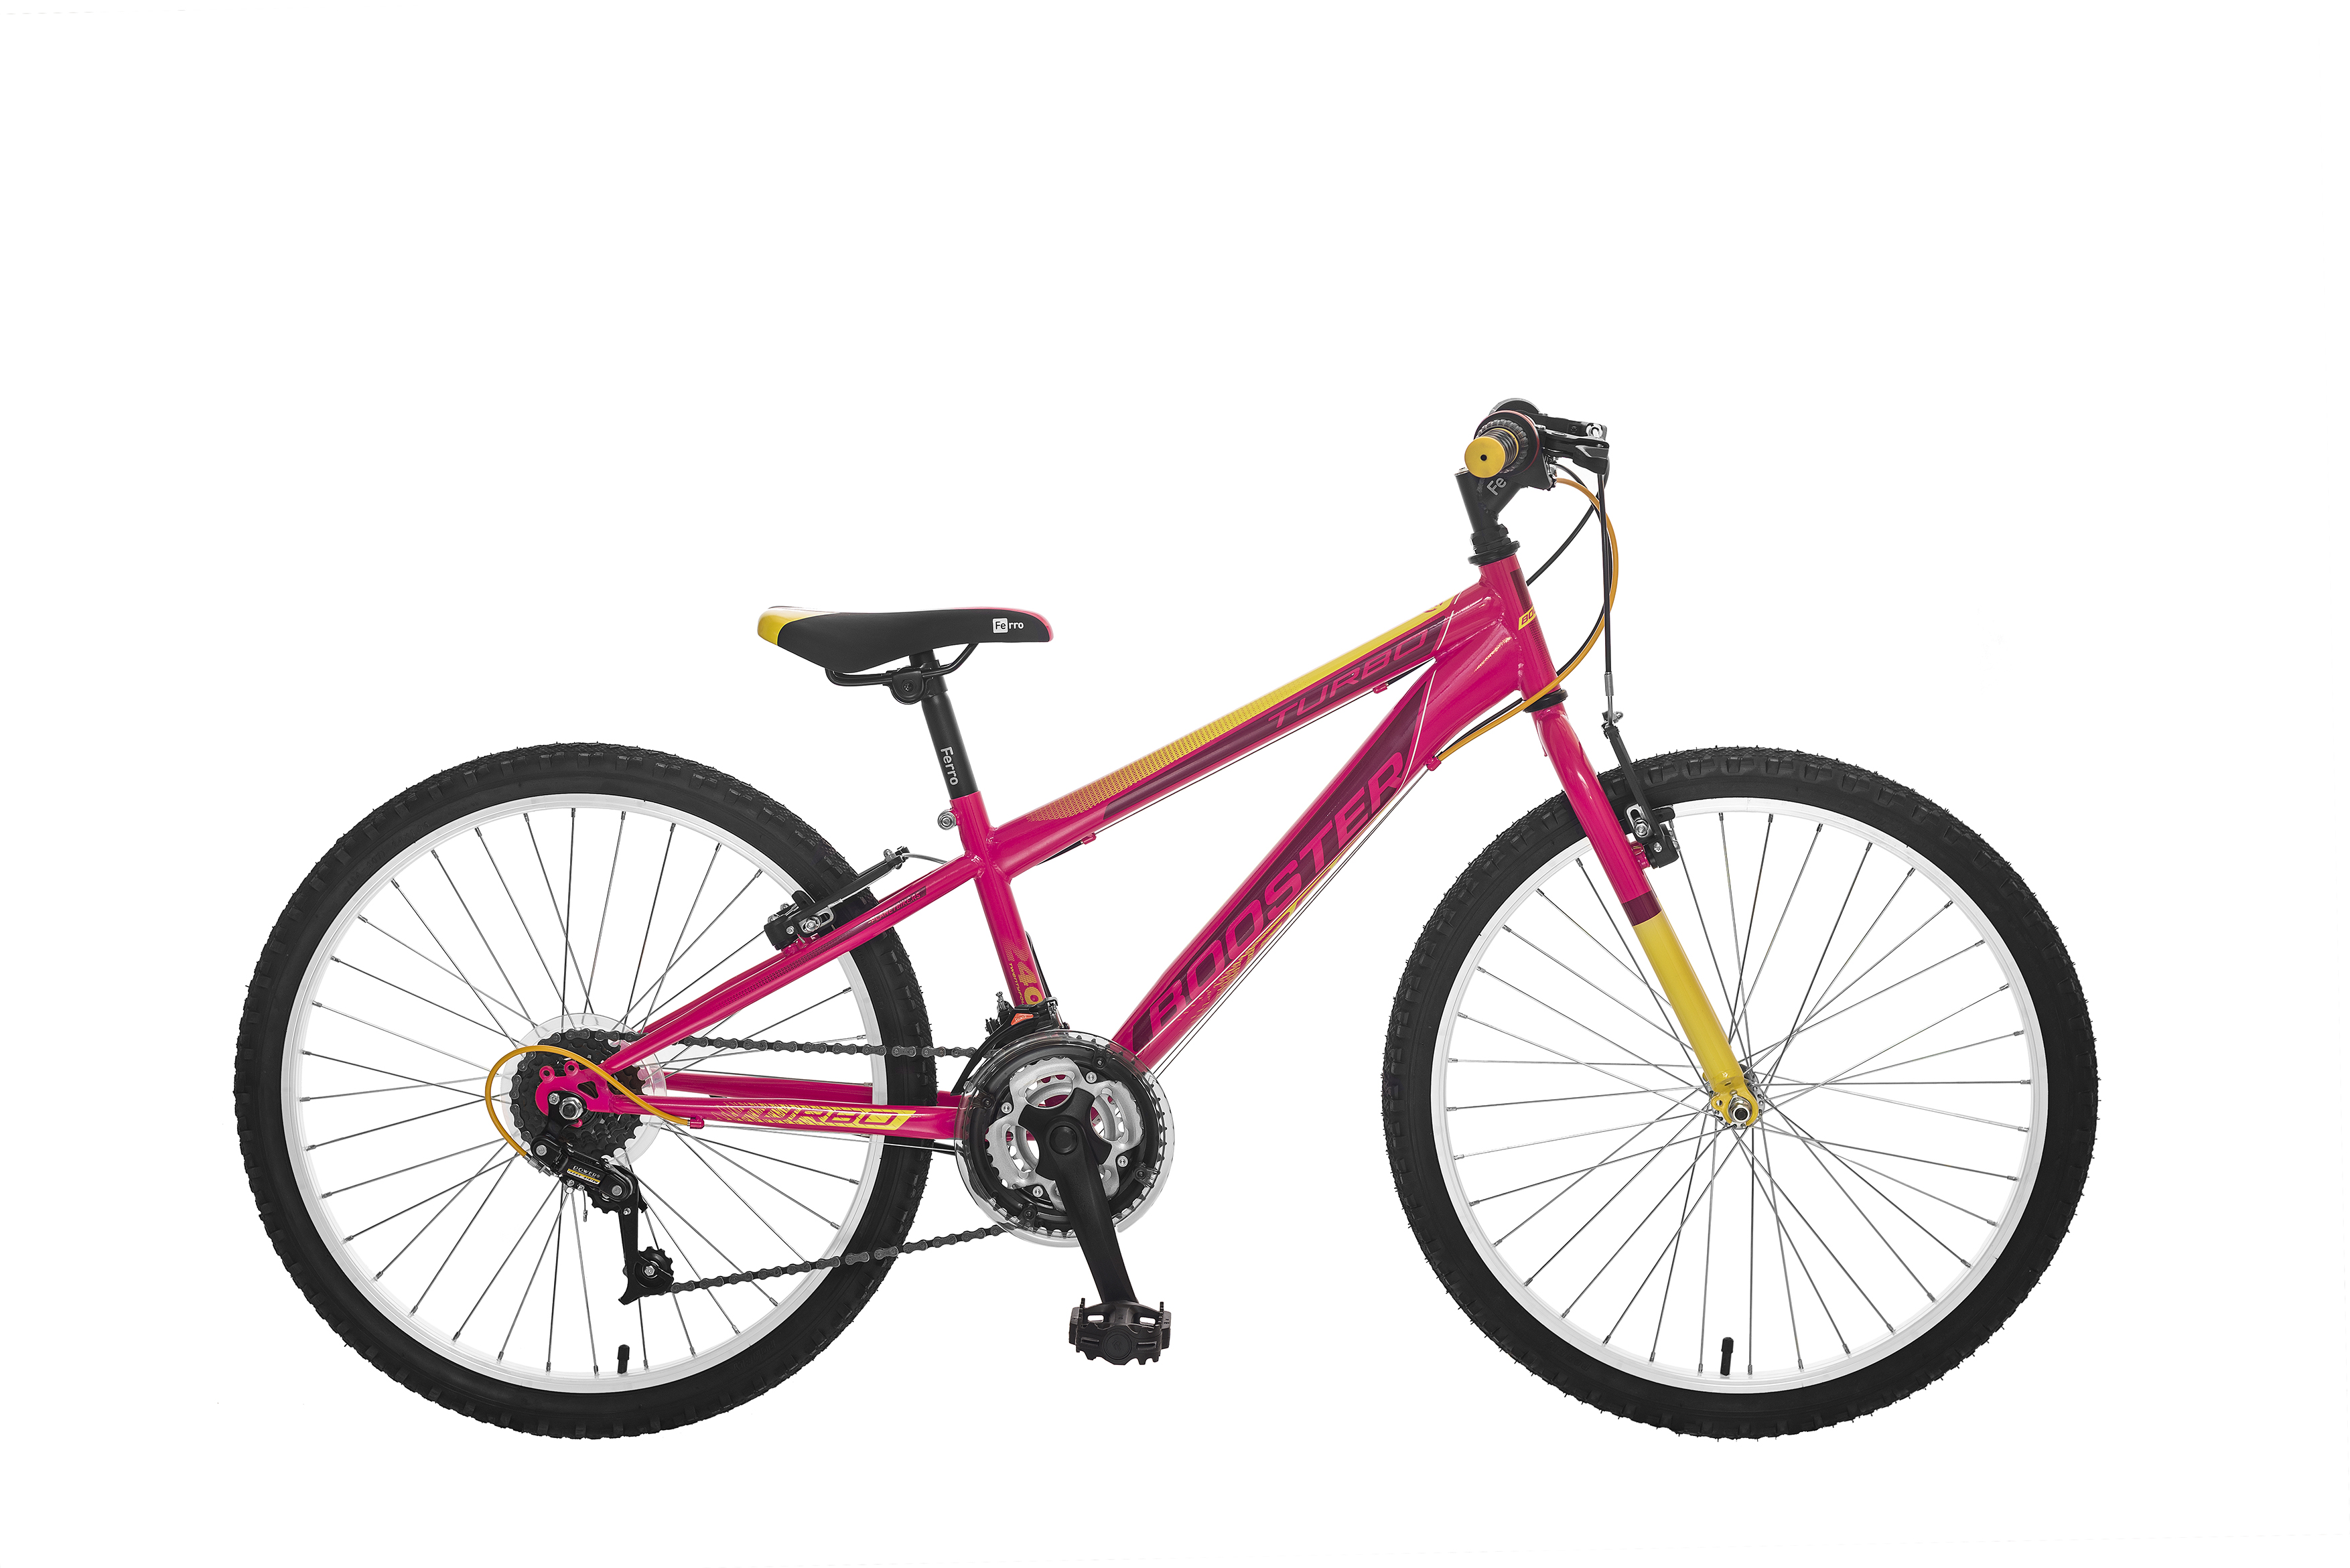 POLAR BOOSTER TURBO 240 PINK-YELLOW